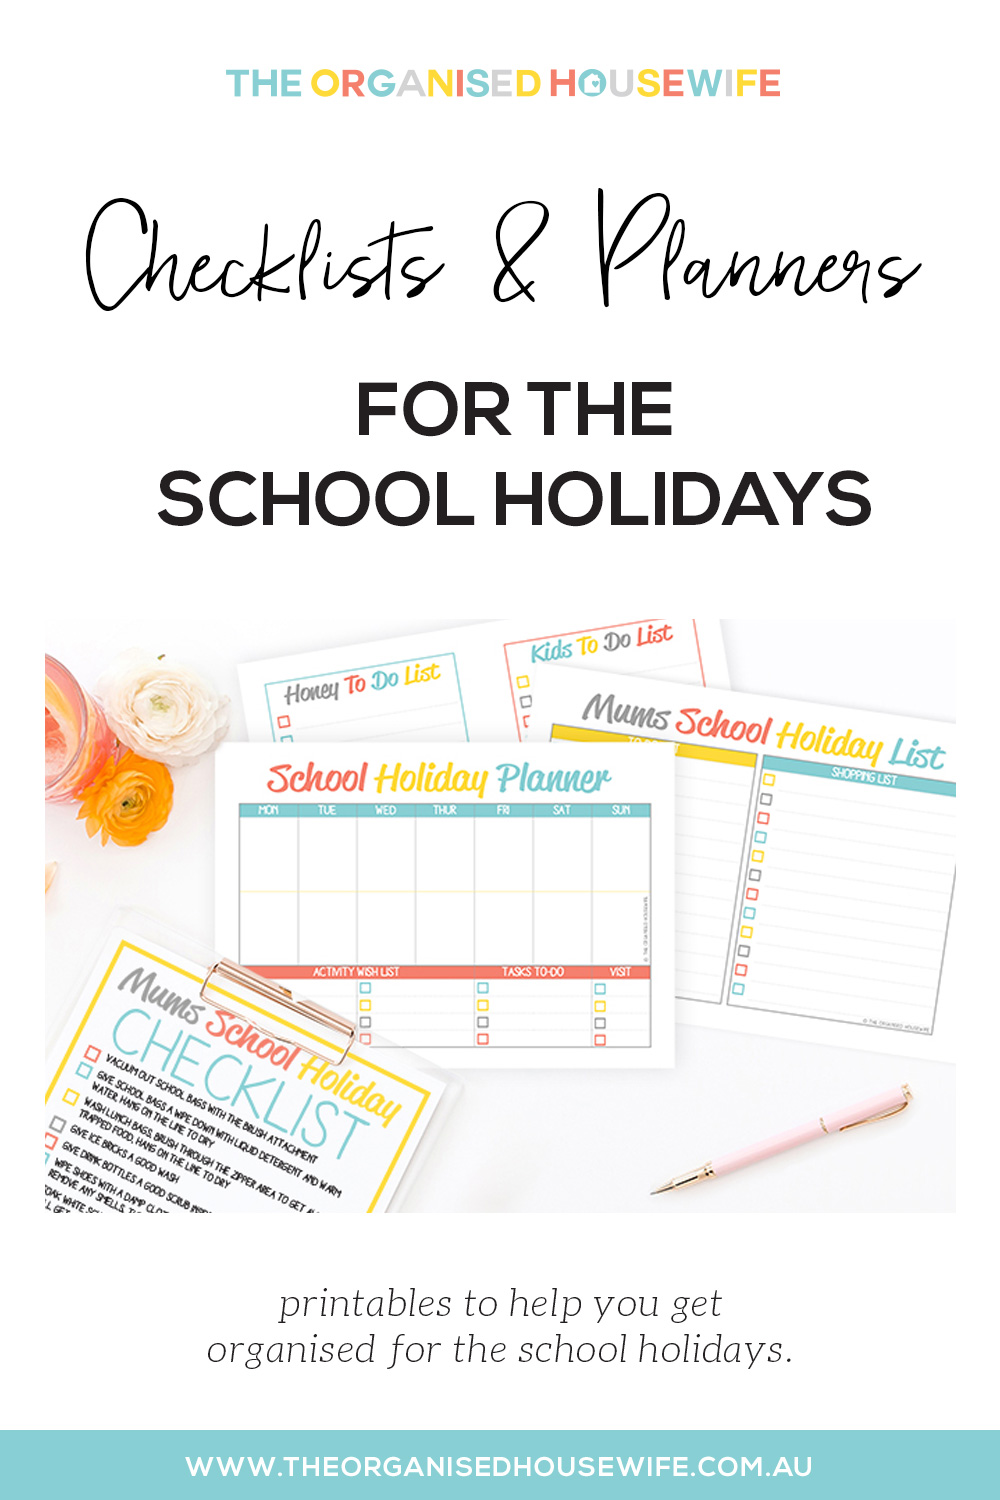 Checklists and planners for the school holidays